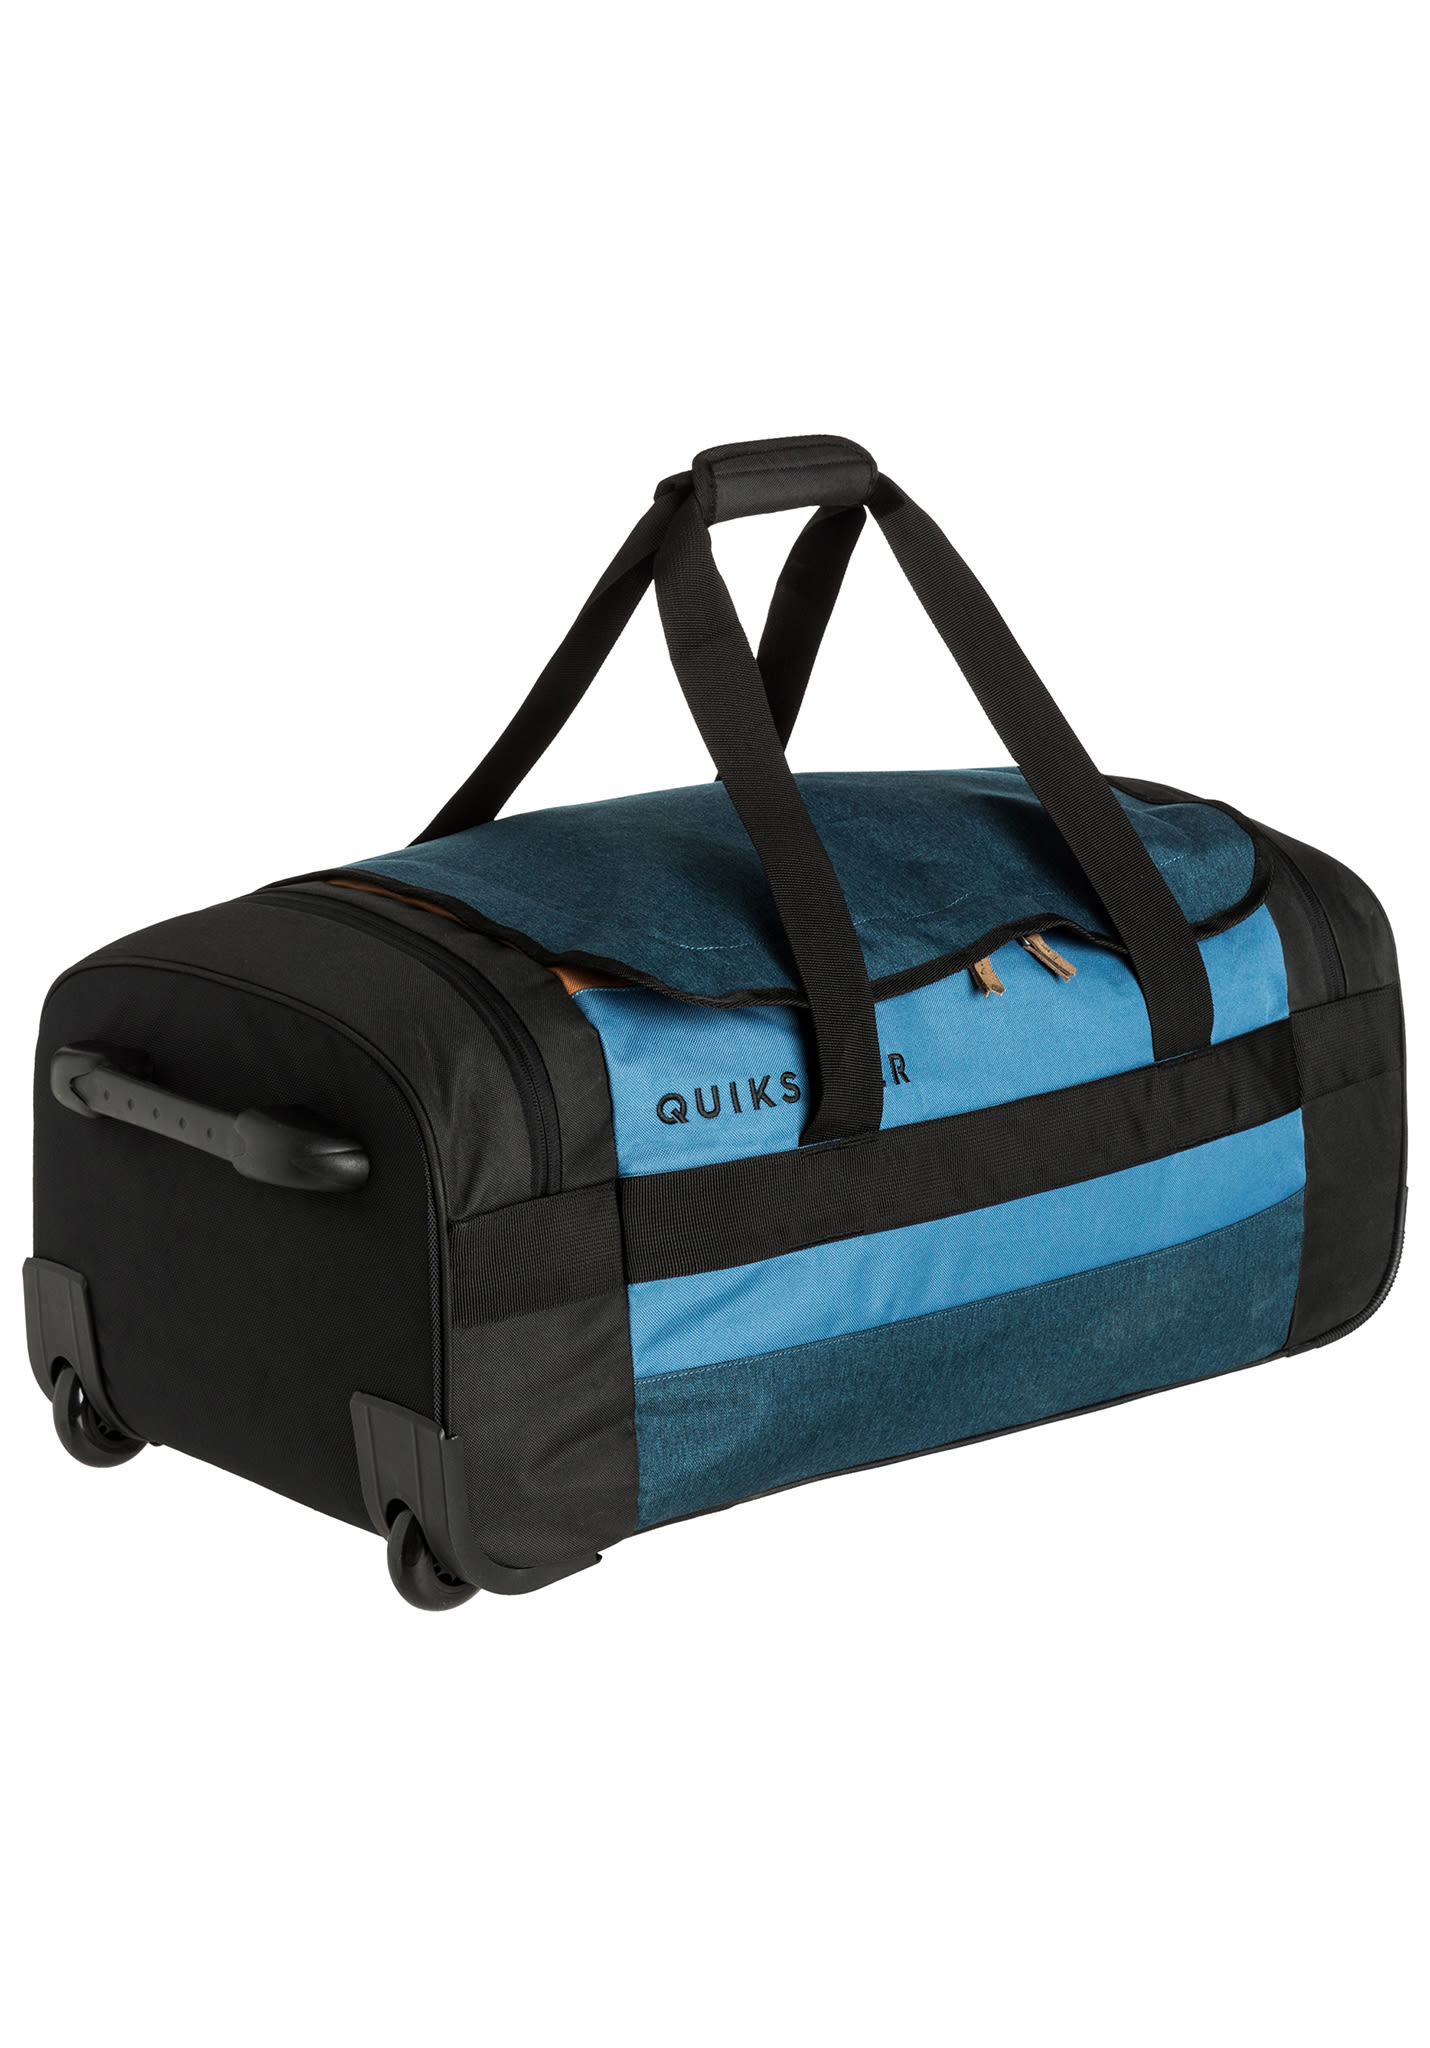 Quiksilver New Centurion - Travel Bag for Men - Blue - Planet Sports 9db66aed0a700